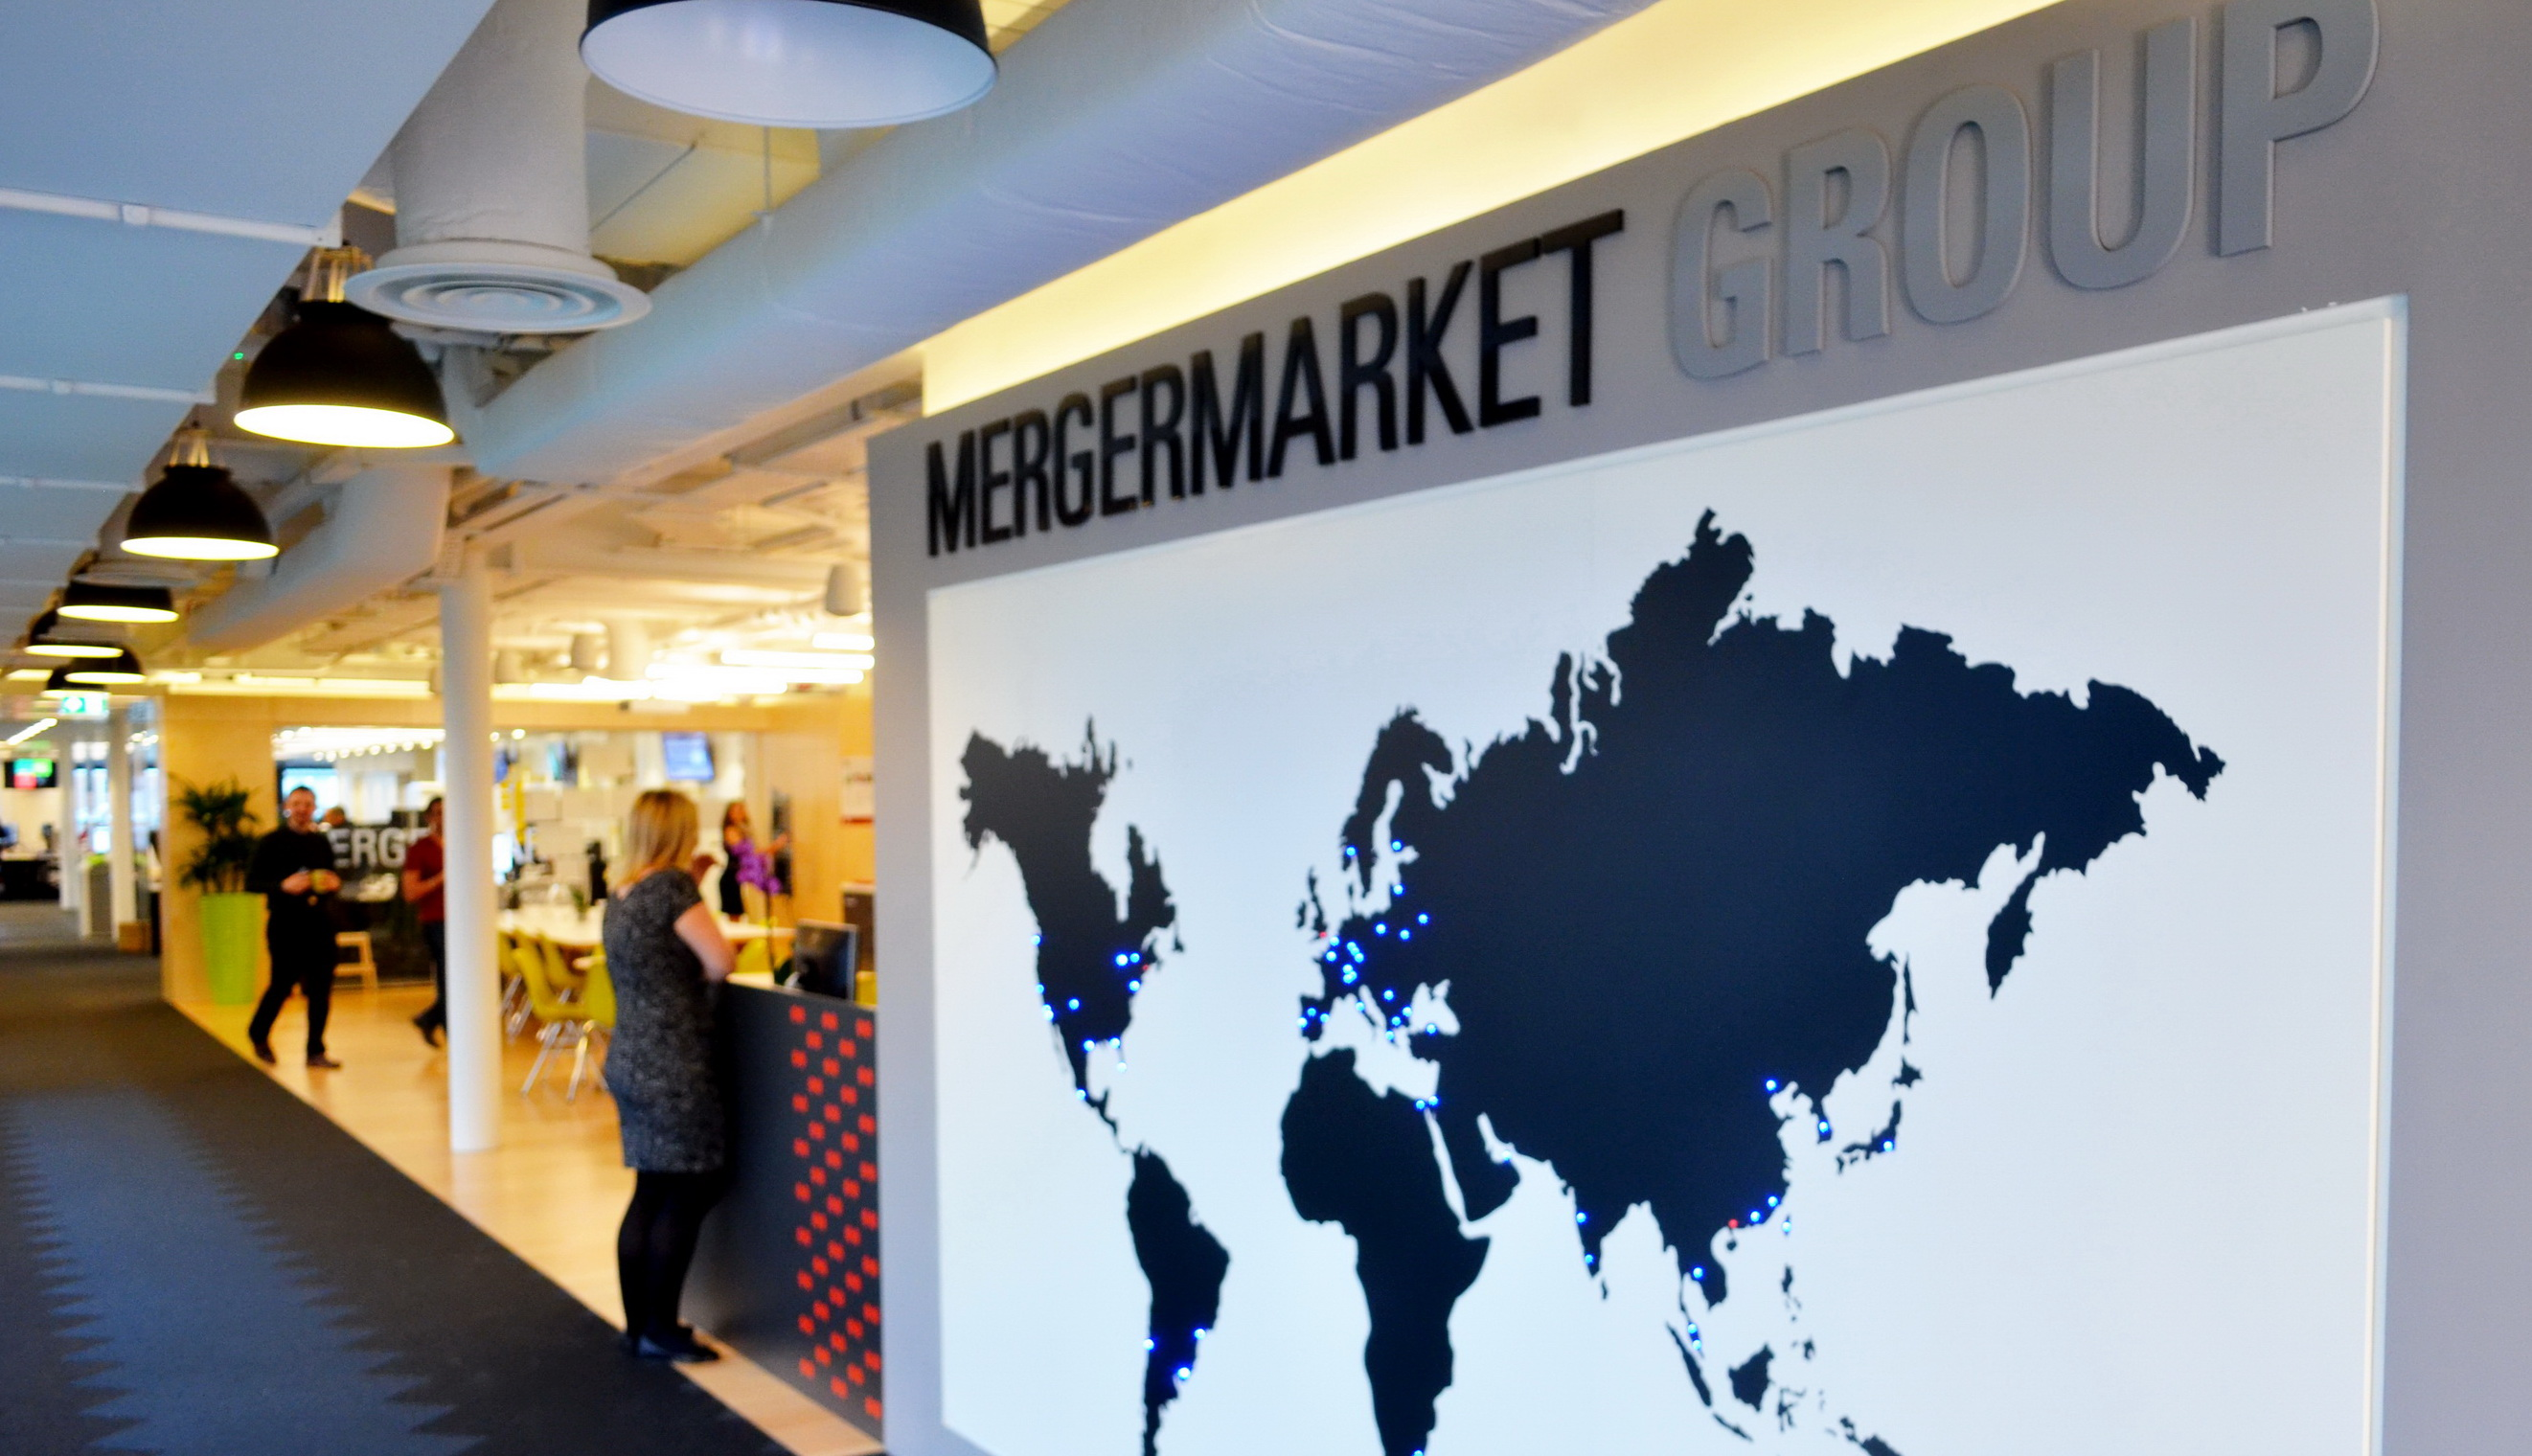 Global HR Manager at Mergermarket Group on the Role of Technology